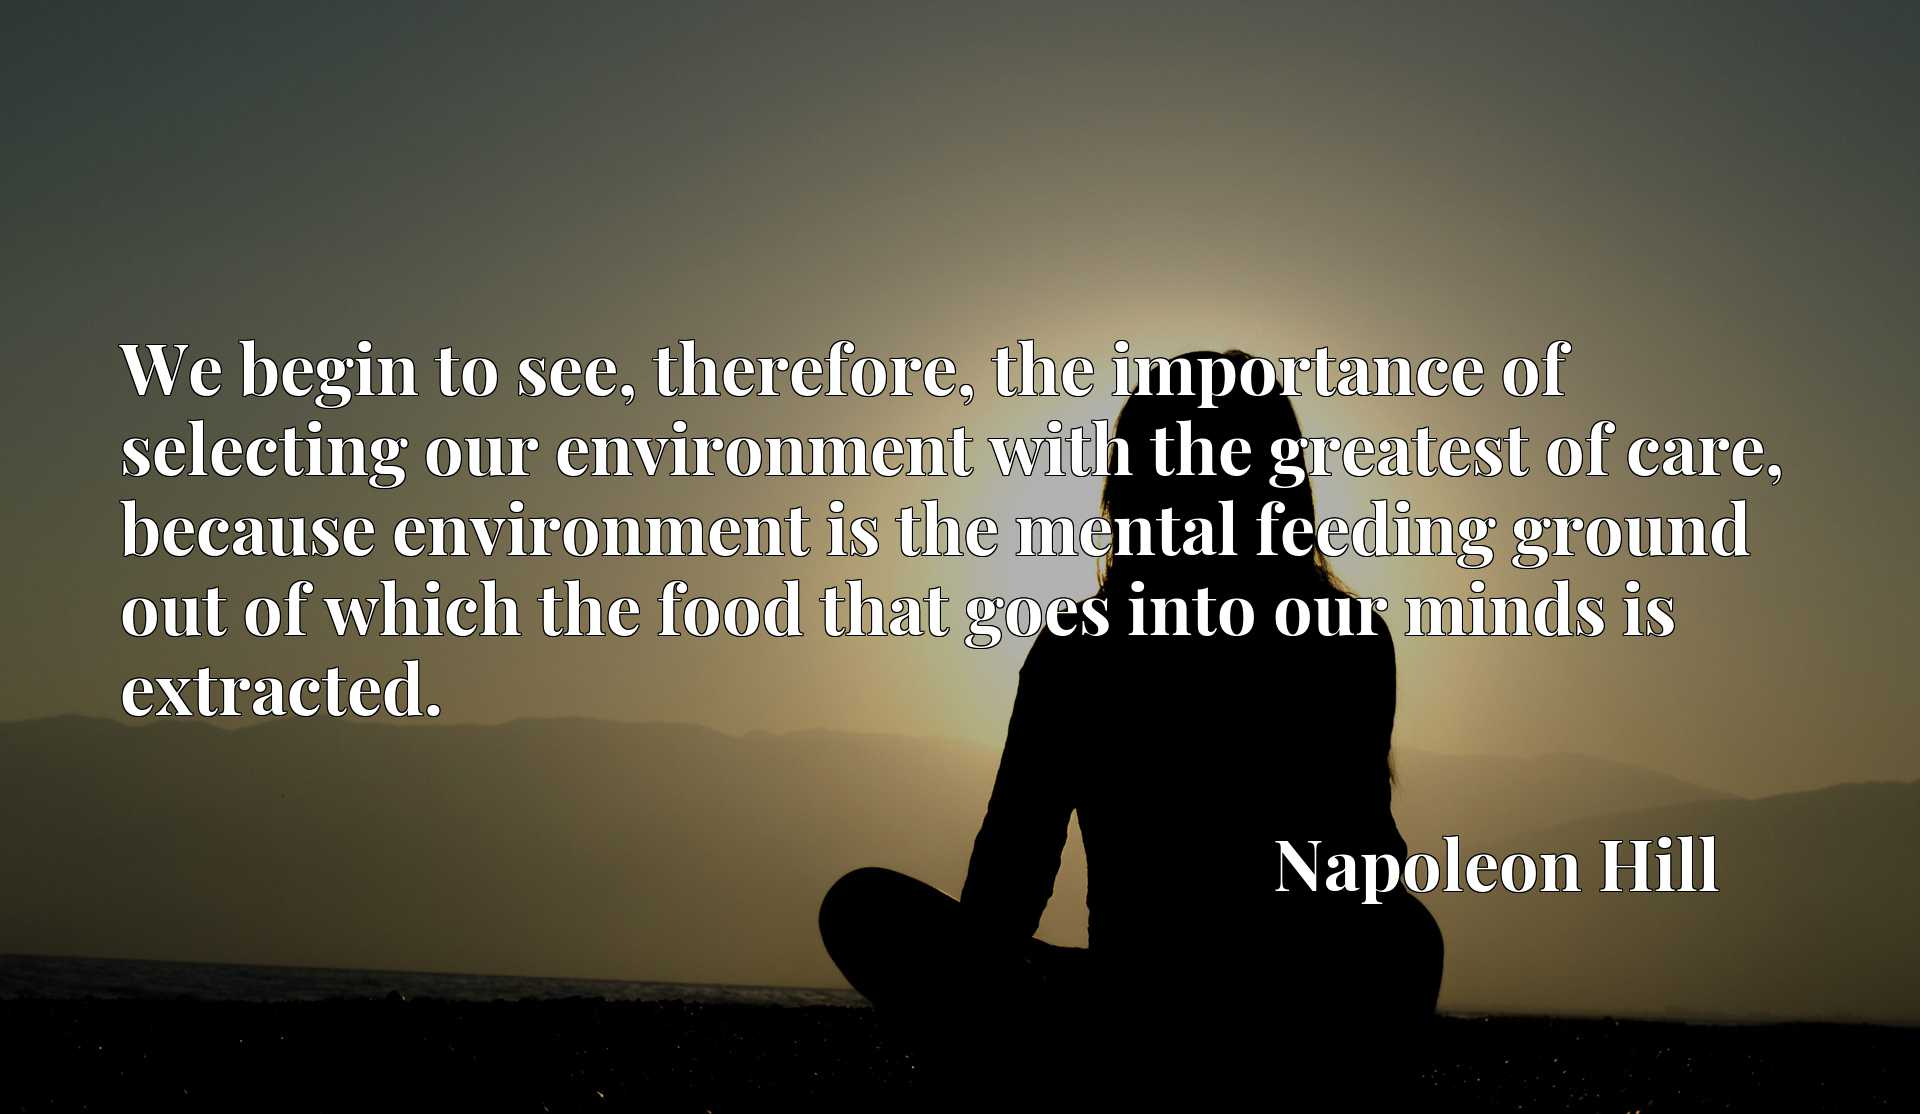 We begin to see, therefore, the importance of selecting our environment with the greatest of care, because environment is the mental feeding ground out of which the food that goes into our minds is extracted.